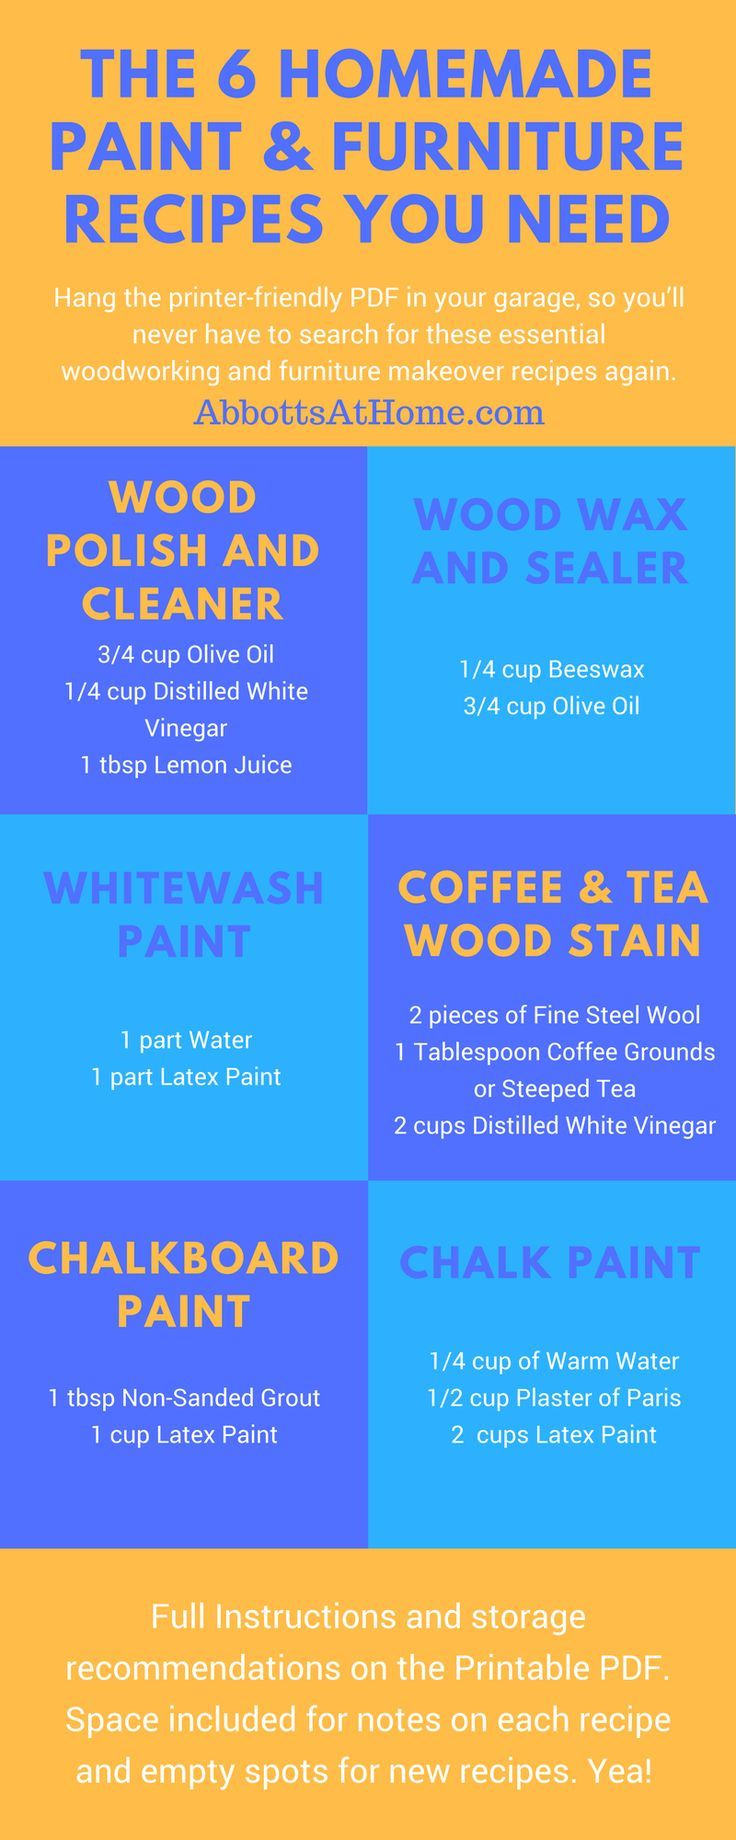 '6 Essential Homemade Wood Finishing Recipes...!' (via Abbotts At Home)